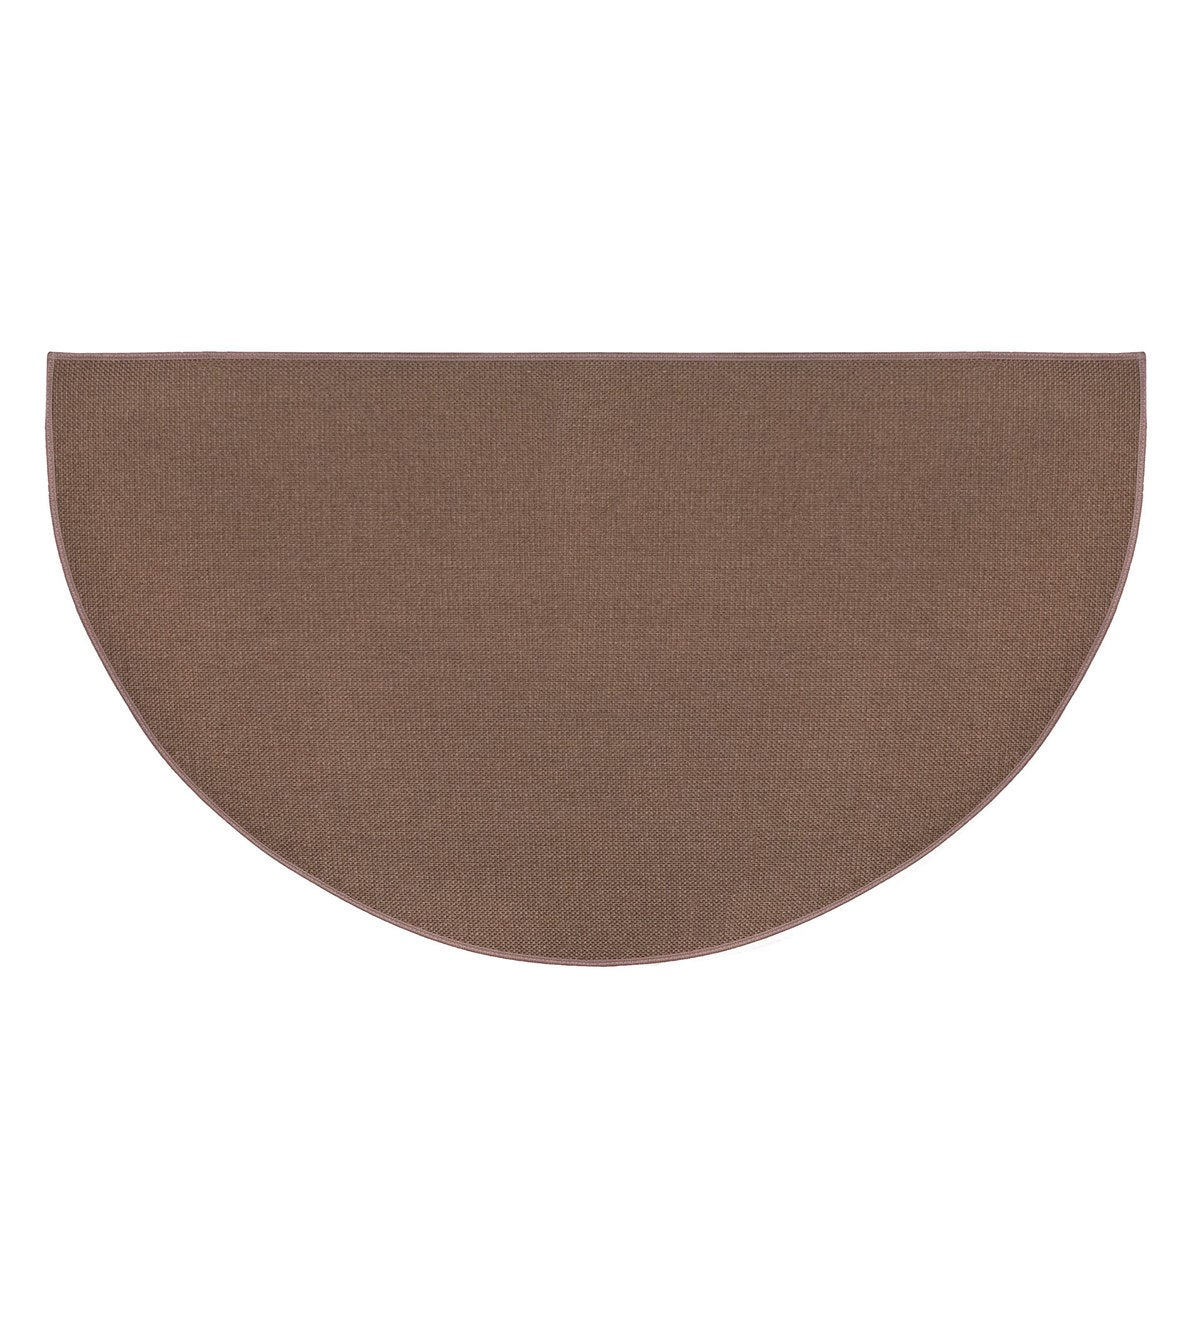 "Flame Resistant Fiberglass Half Round Hearth Rug, 27"" x 48"" - Brown"